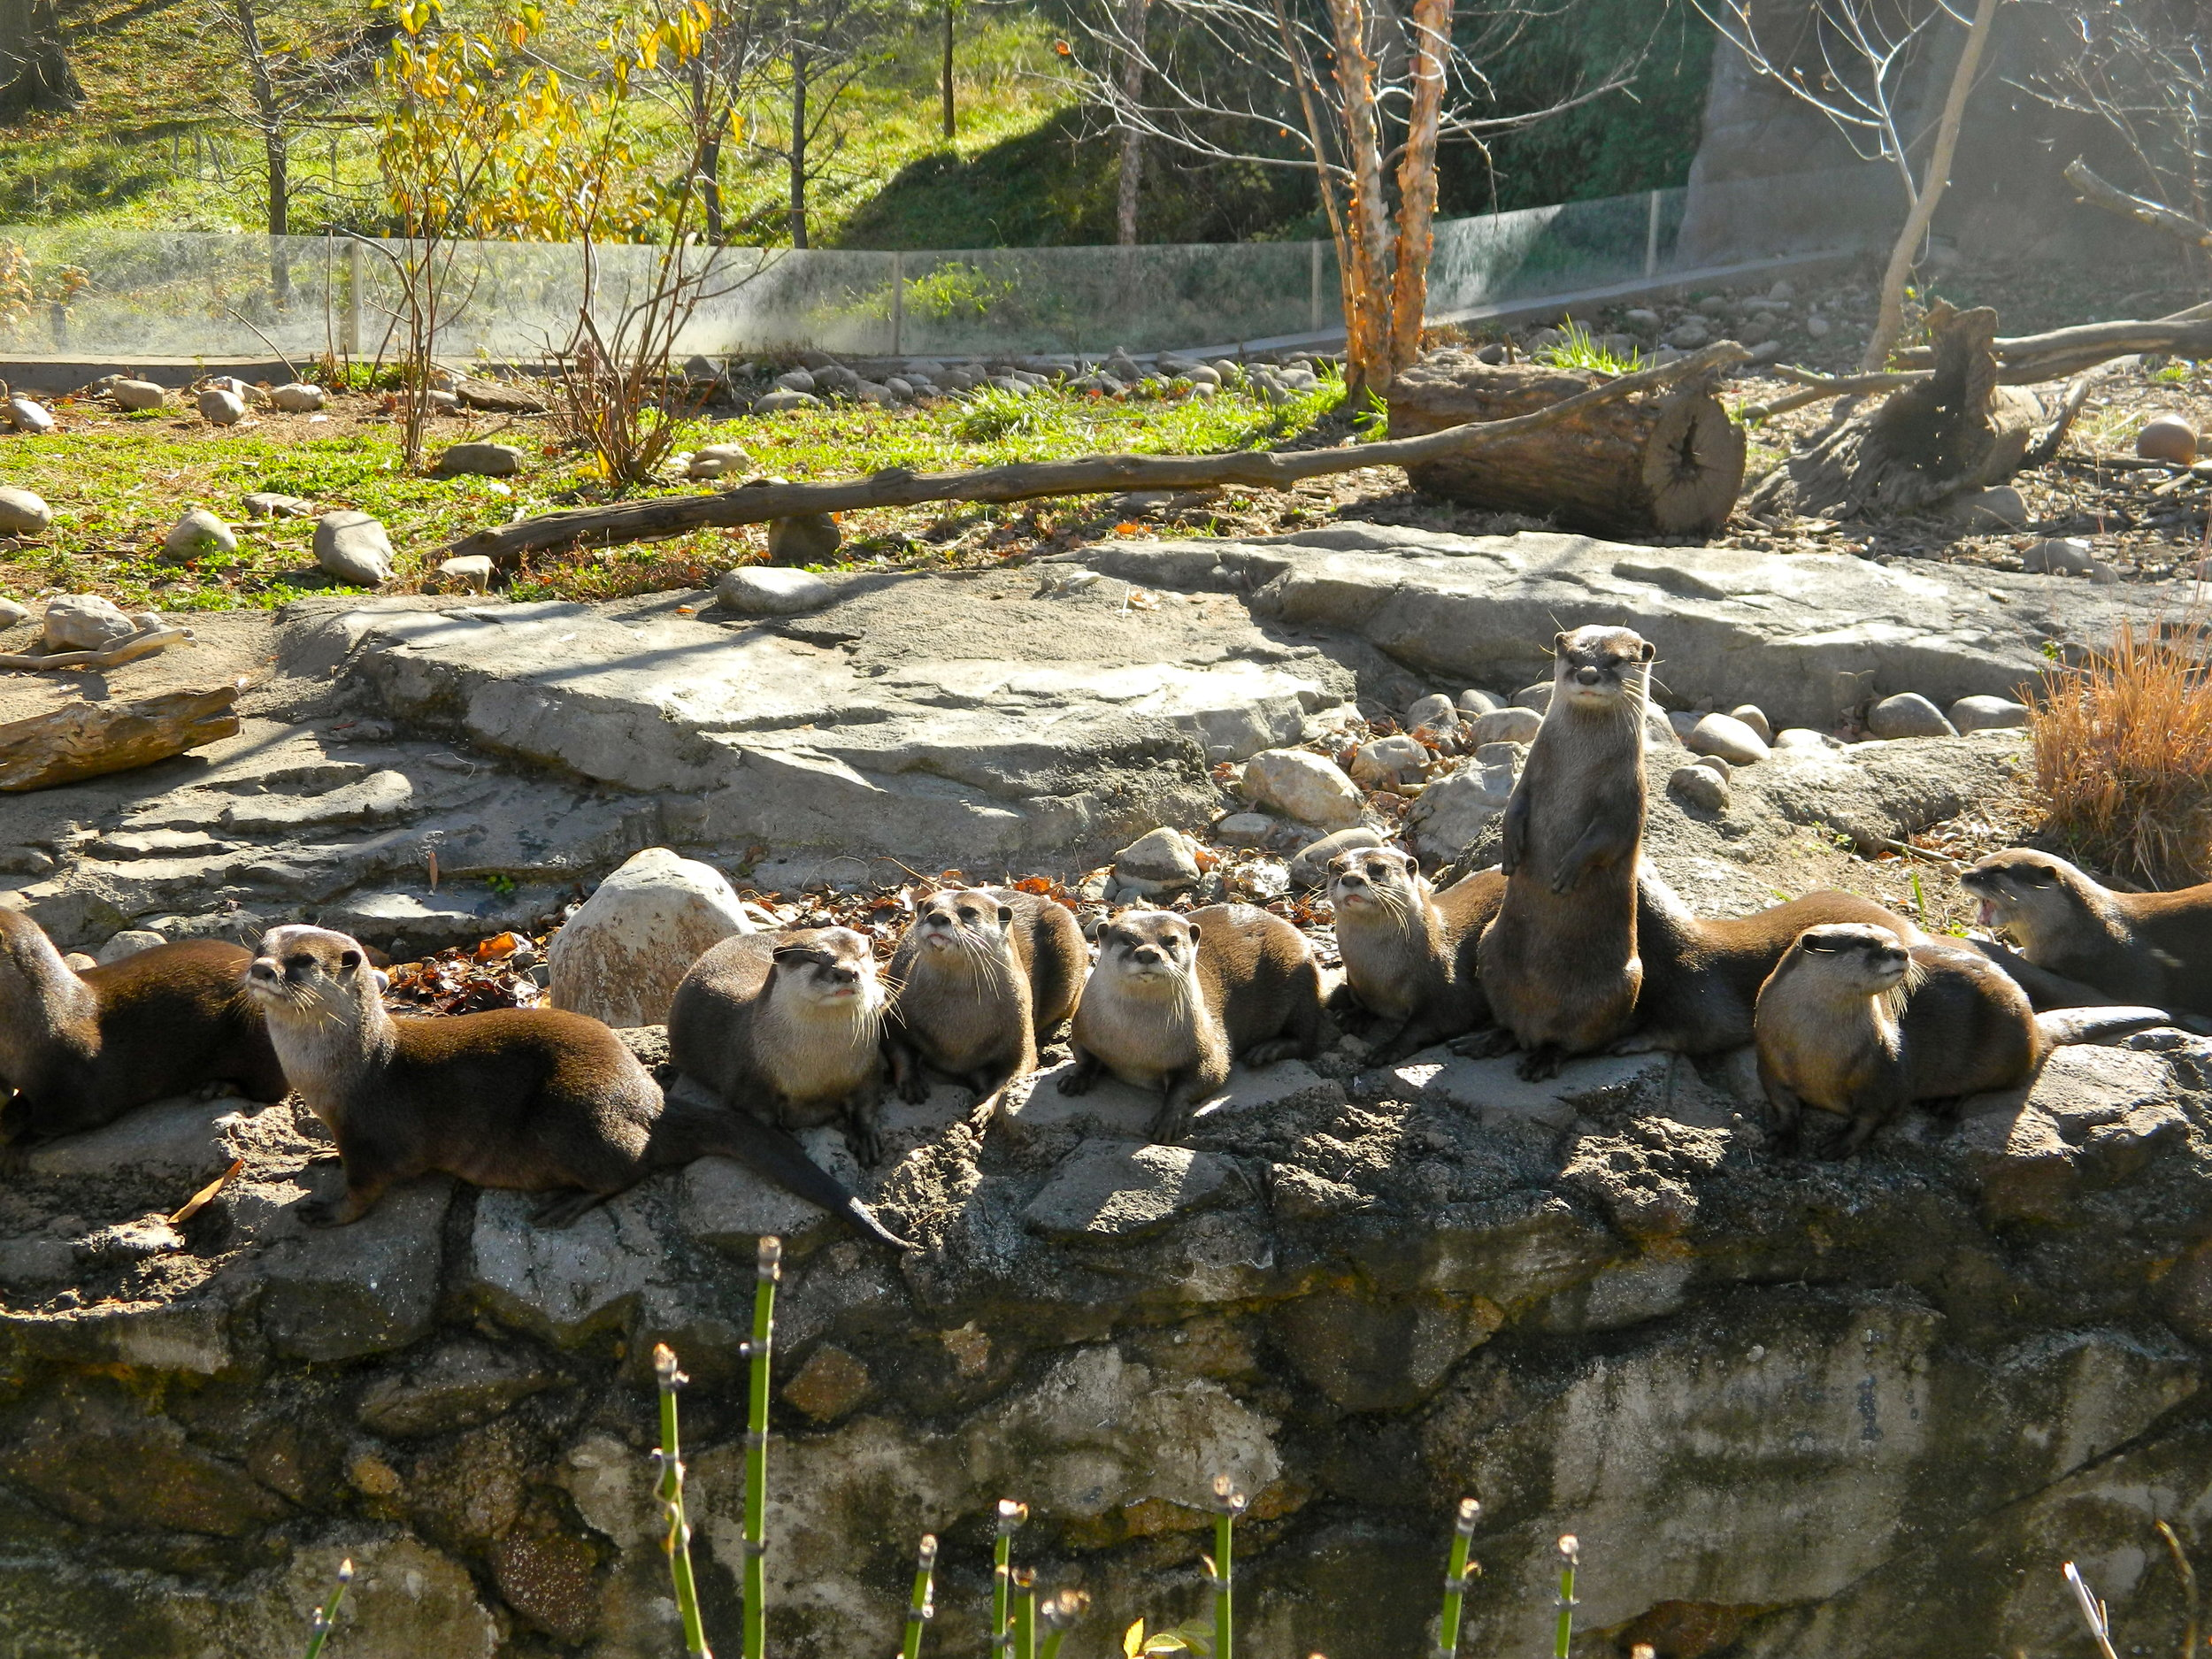 Otters Make a Receiving Line When Guests Arrive 1